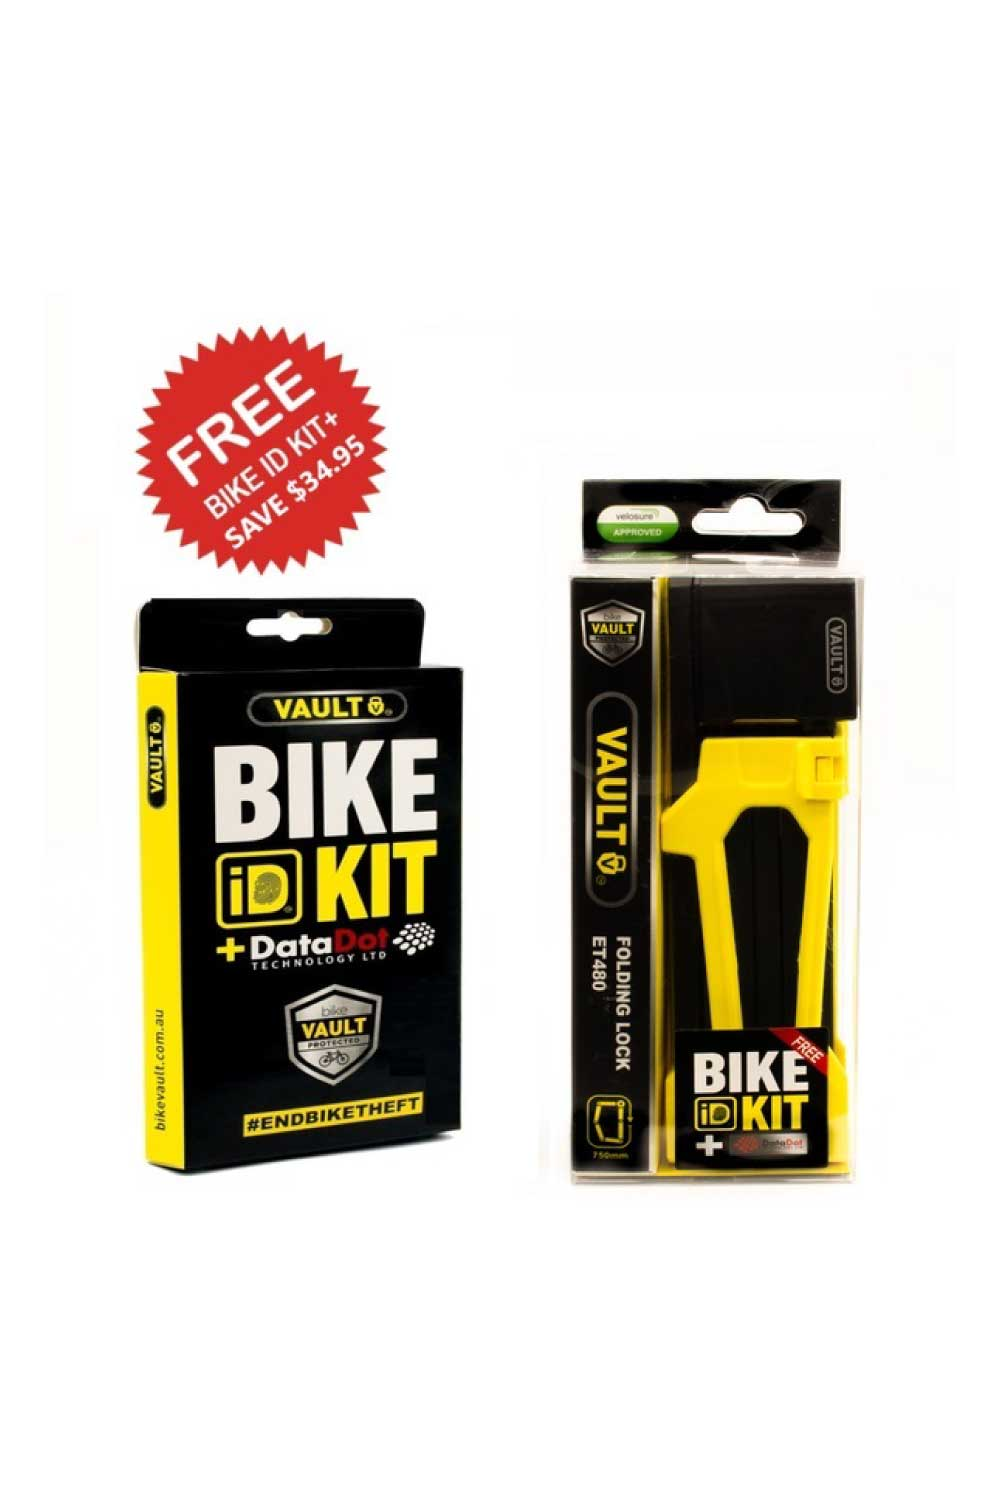 Vault Folding Lock With Bike ID Kit+